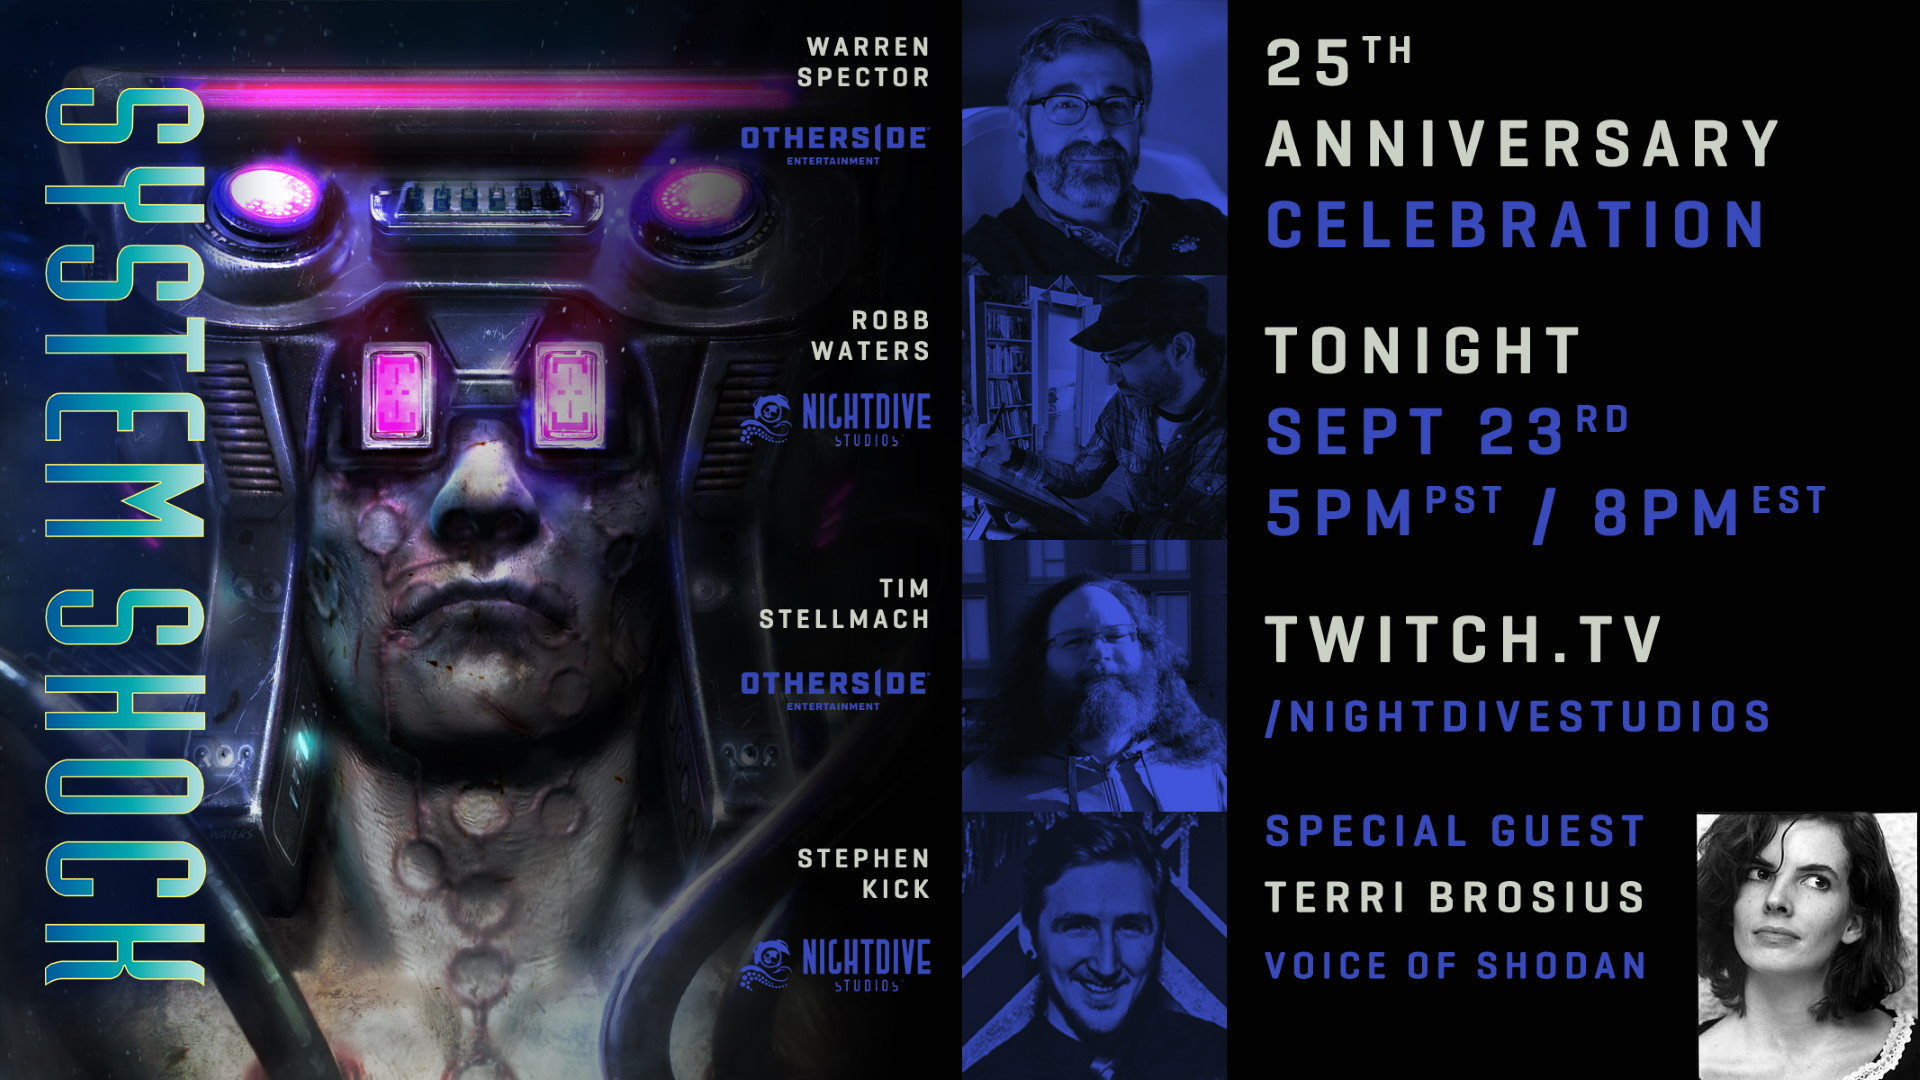 System Shock anniversary stream will feature Warren Spector and the voice of Shodan | PC Gamer